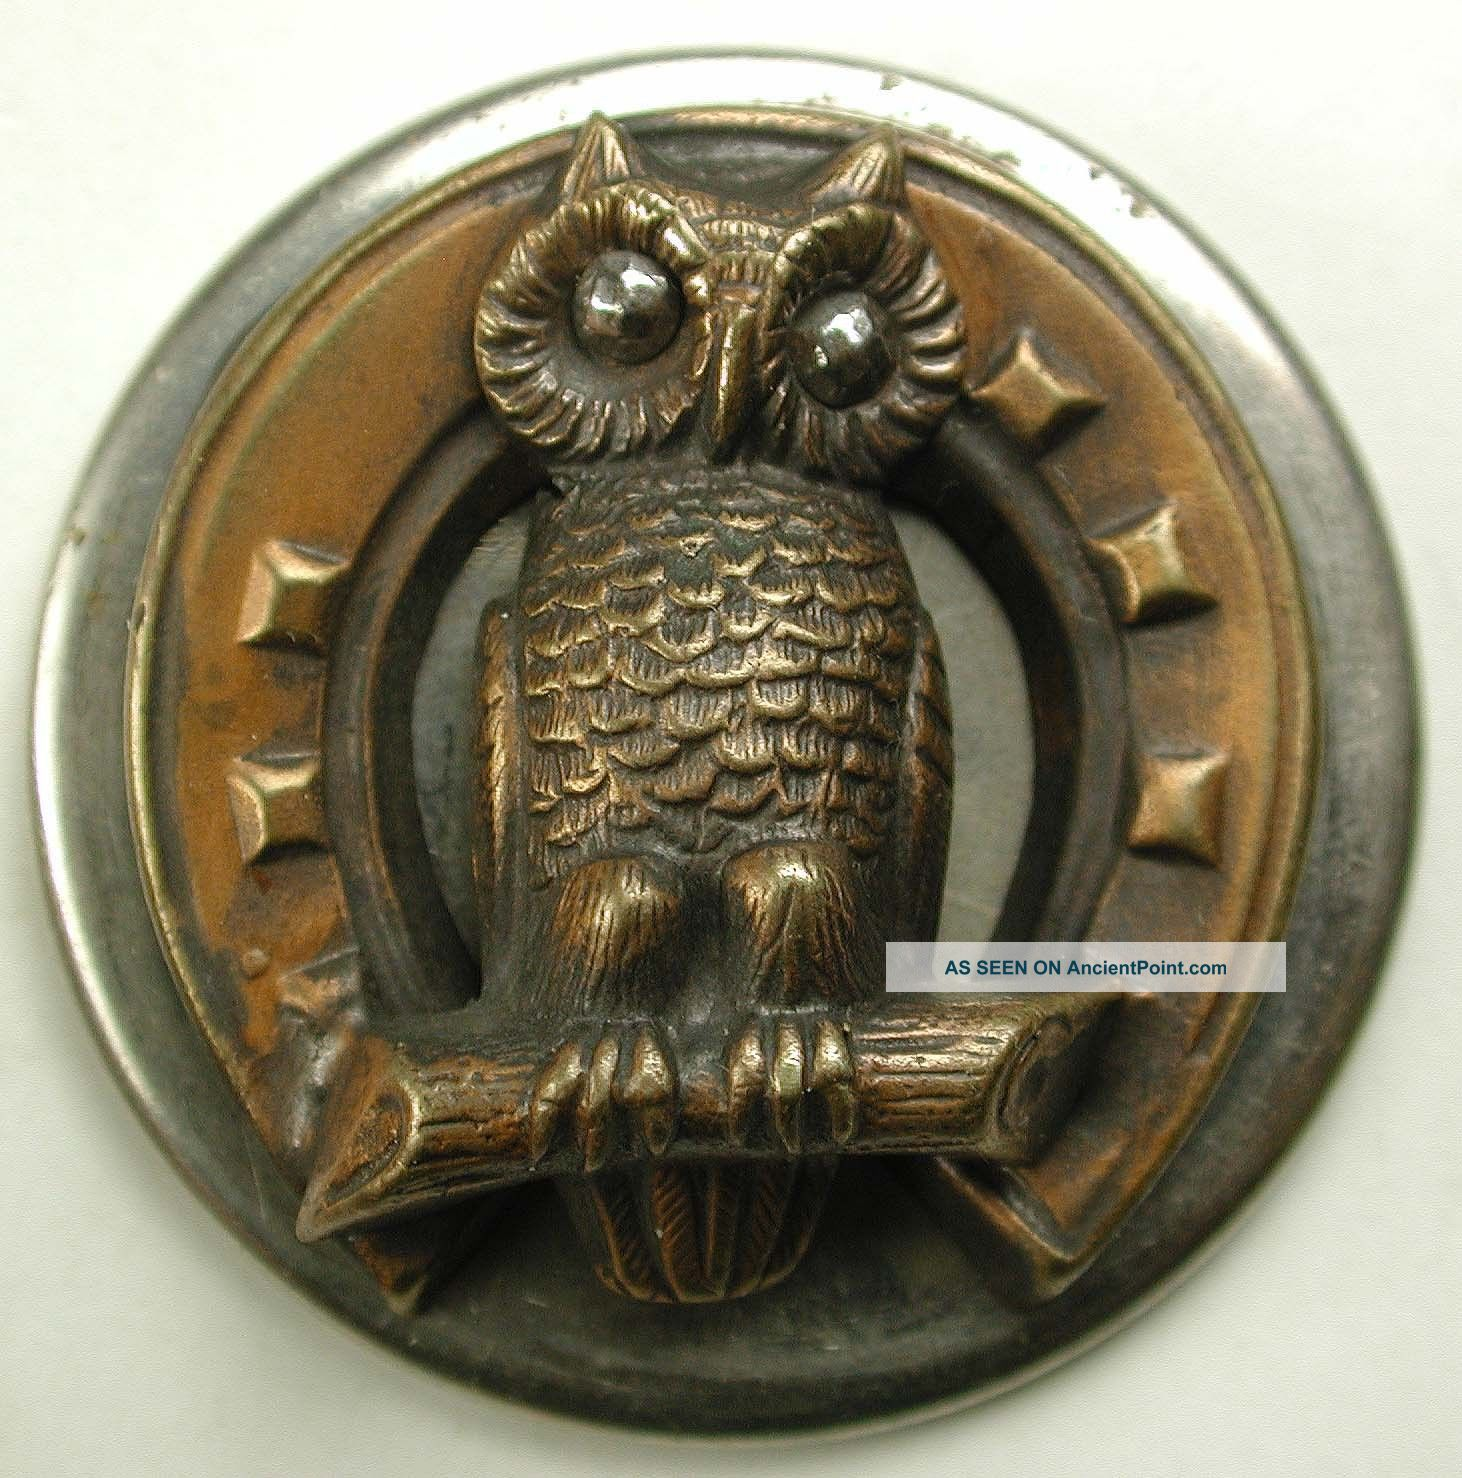 Antique Button Lg Sz Copper Owl On Horseshoe Wsteel Eyes Escutcheon 1 & 5/8